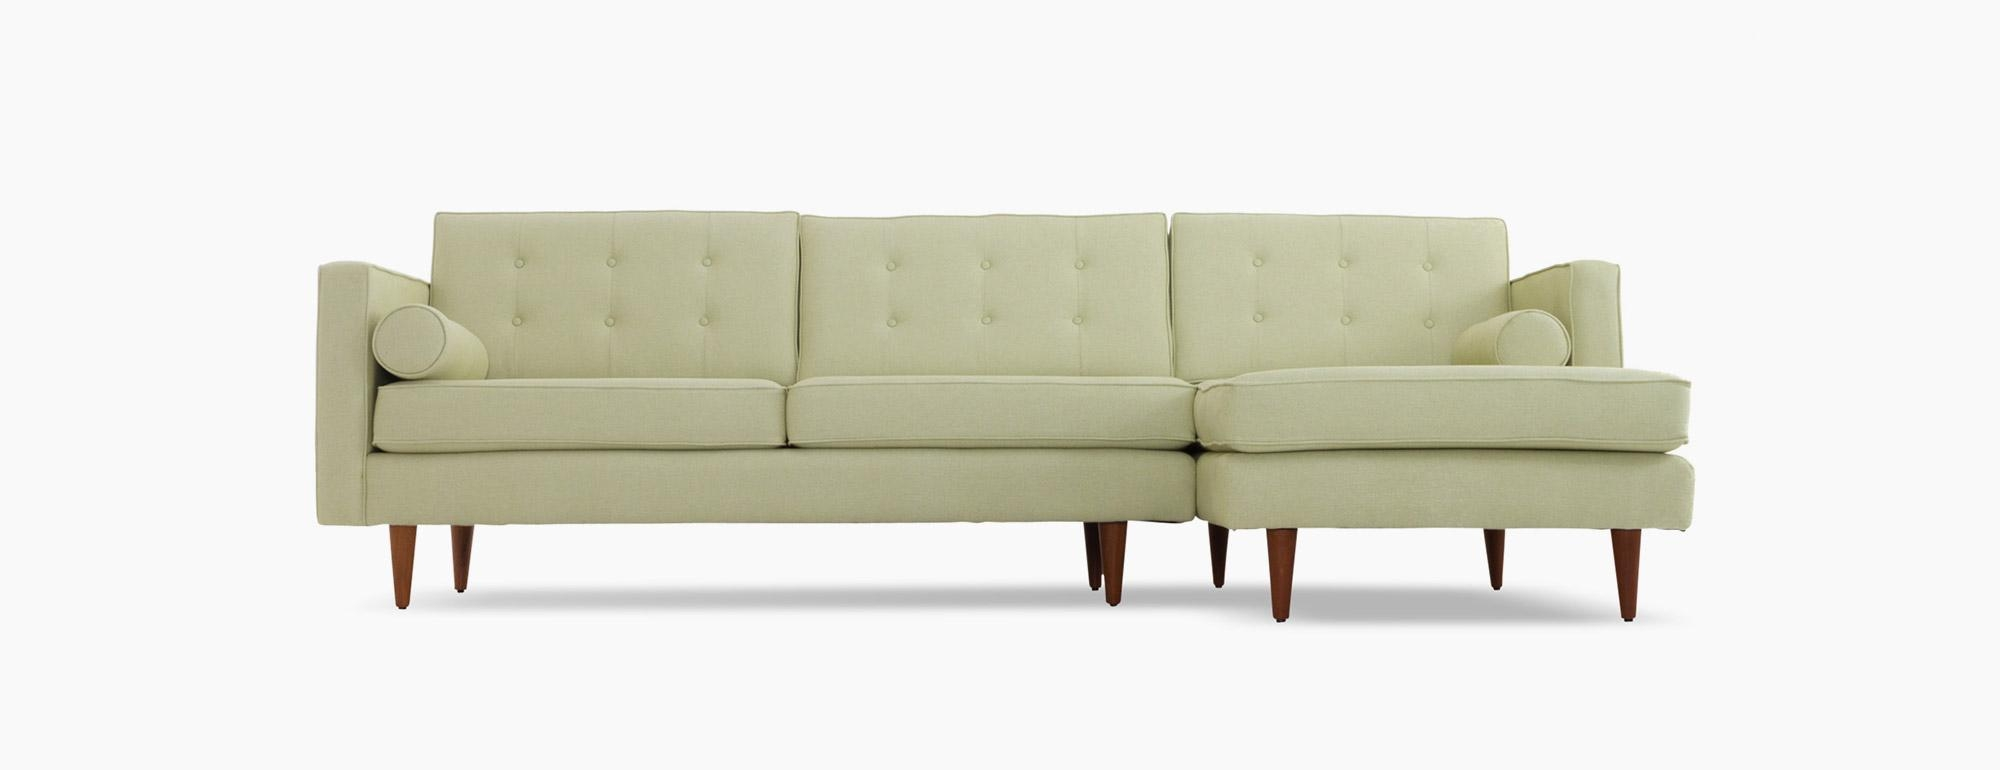 Braxton Sectional | Joybird Throughout Braxton Sectional Sofa (Image 6 of 15)